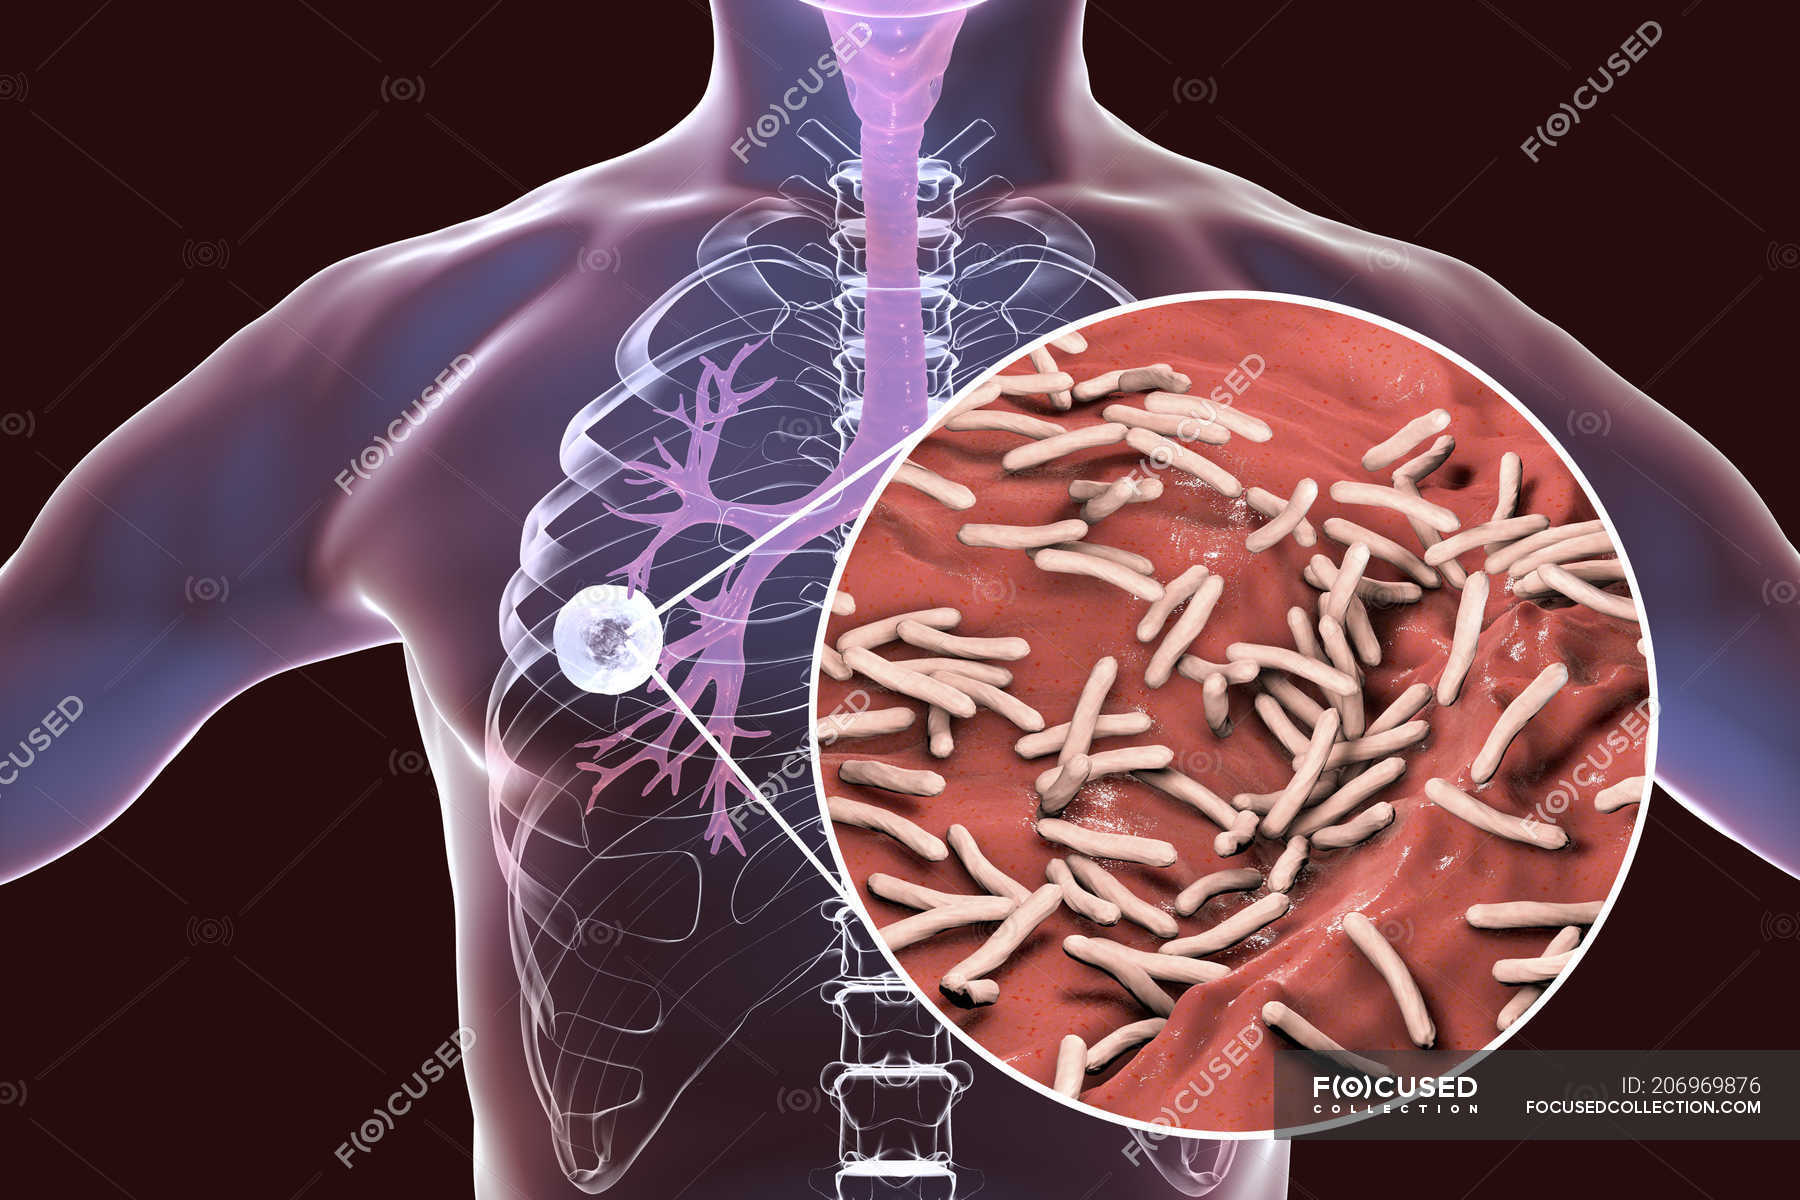 Fibrous Cavernous Pulmonary Tuberculosis And Close Up Of